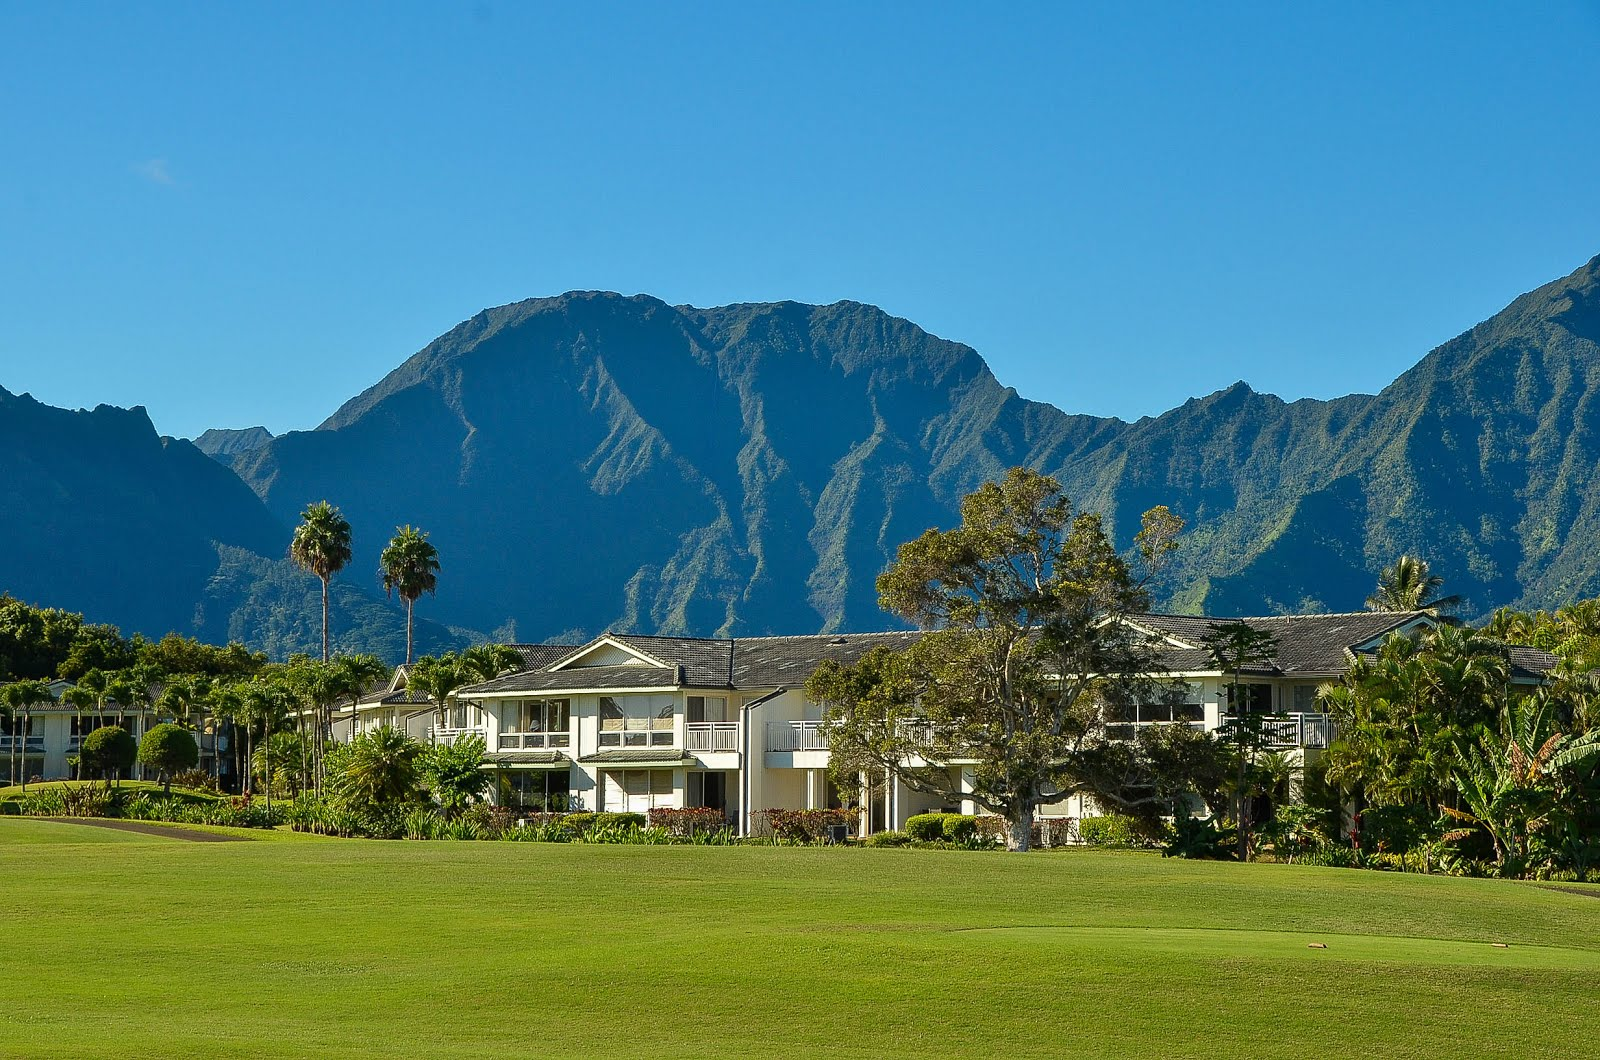 princeville singles Make a restaurant reservation at kauai grill - st regis - hawaii in princeville, hi select date, time, and party size to find a table.